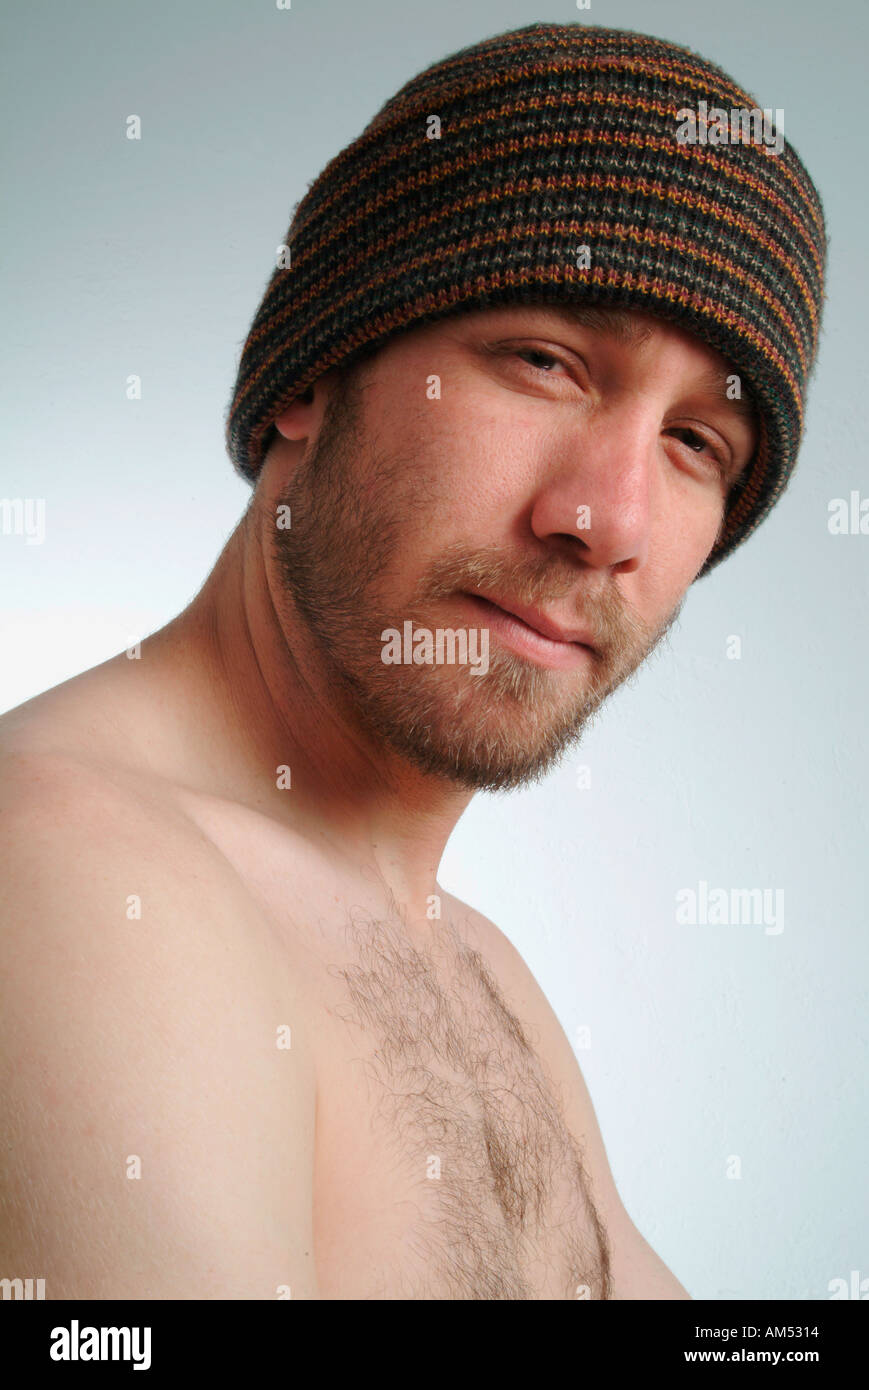 Glaring young 20 something man with beard and ski hat and no shirt - Stock Image